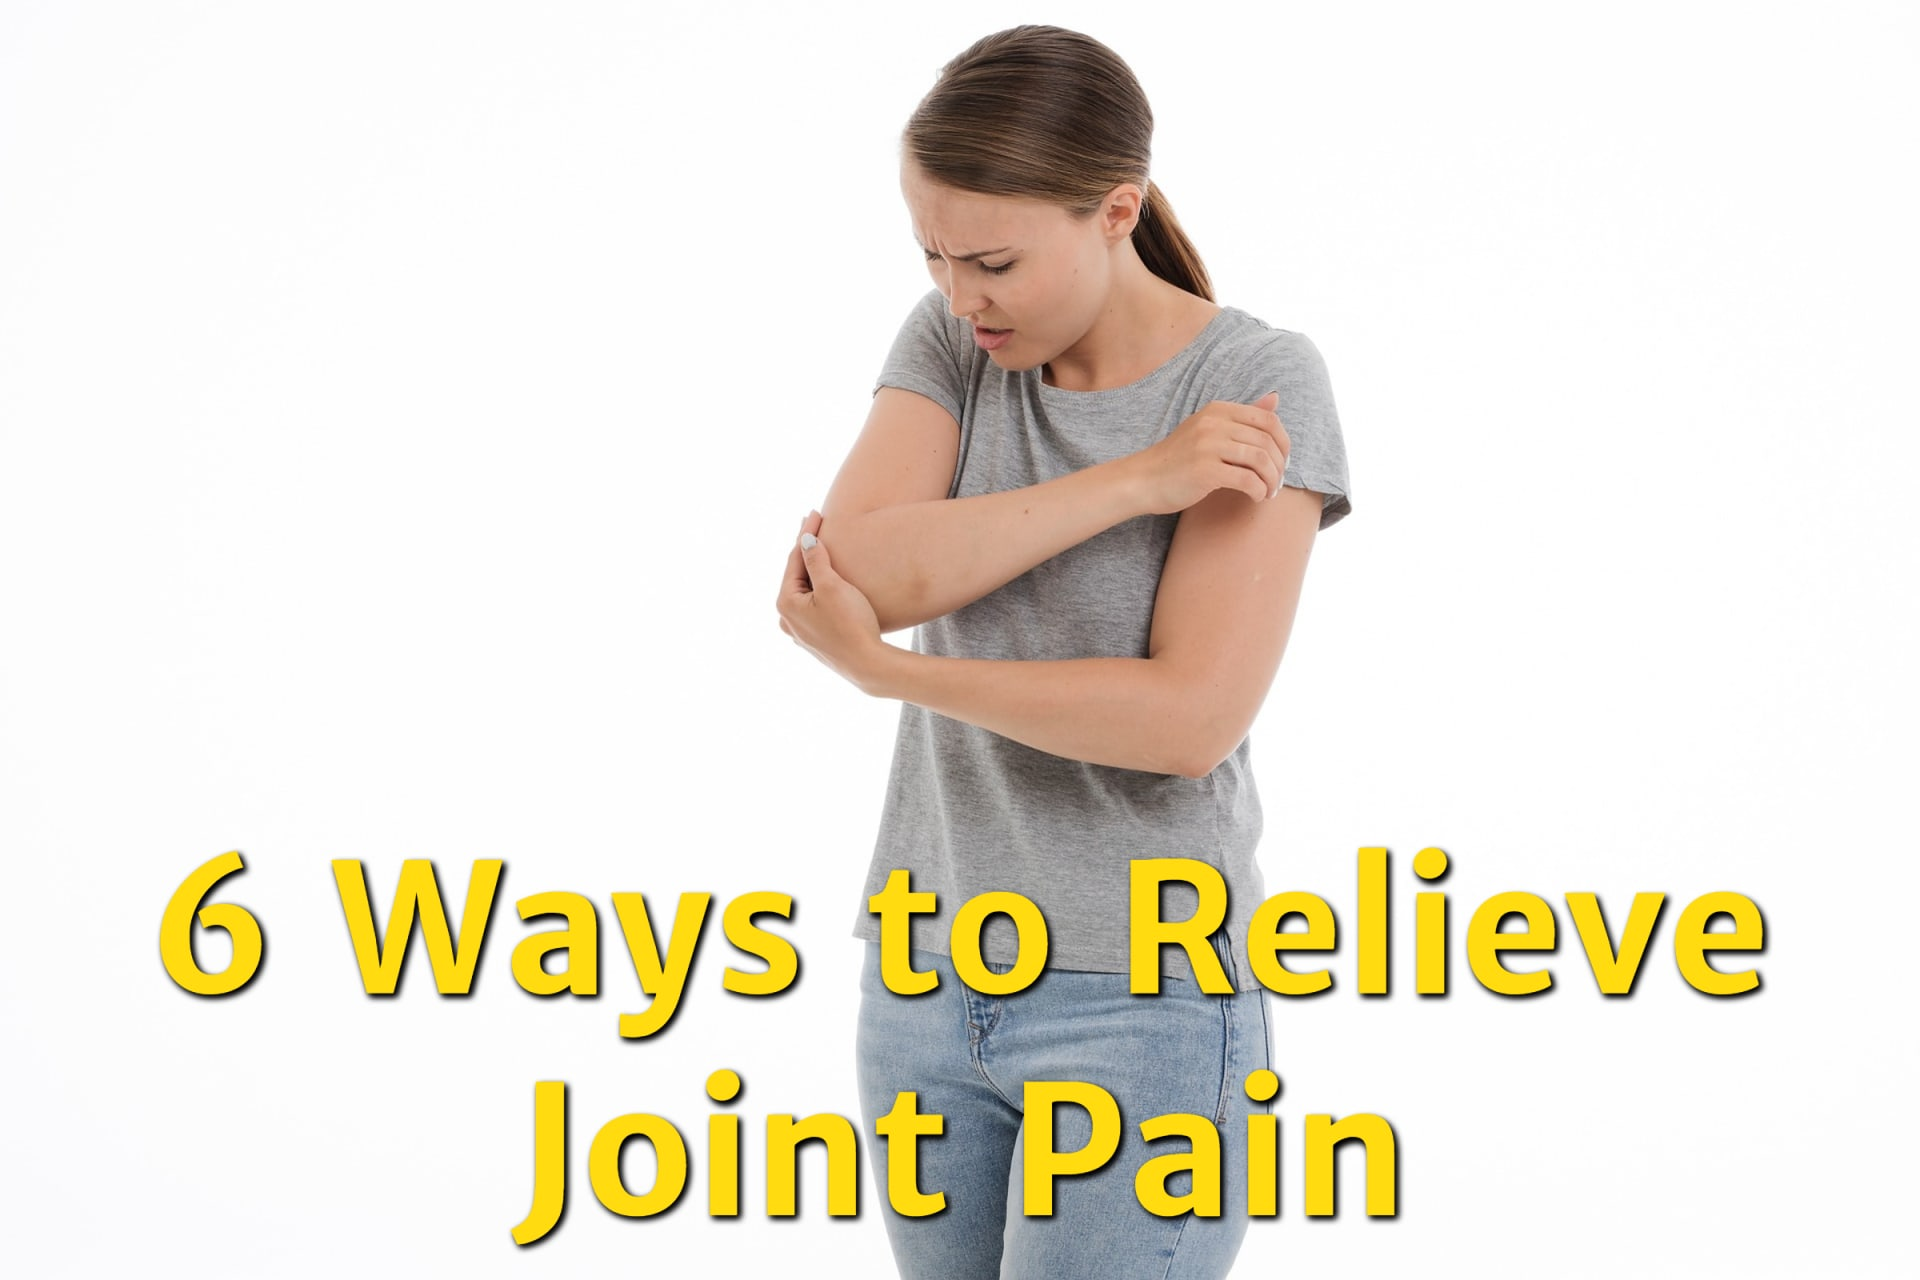 6 Ways to Relieve Joint Pain